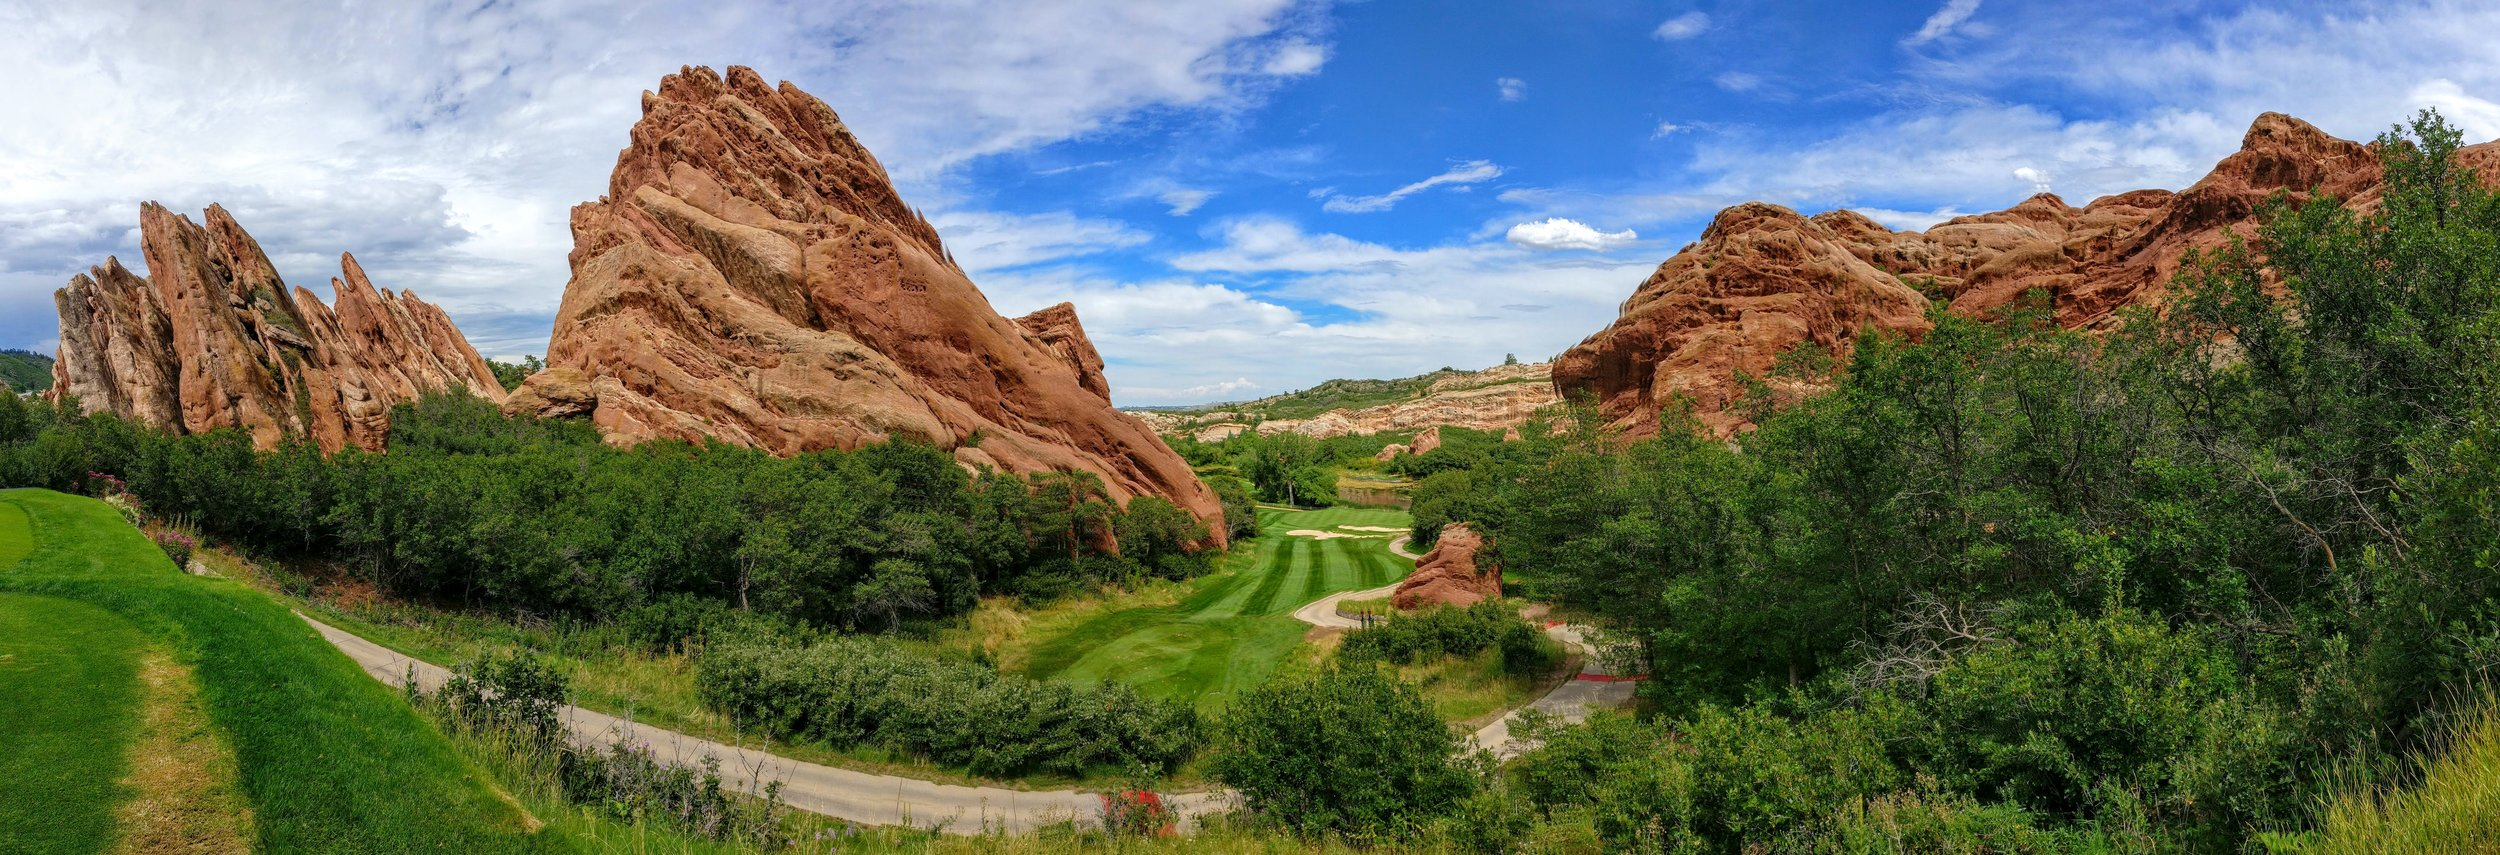 Arrowhead Golf Course, near Littleton, CO. This time I looked - next time I'll play